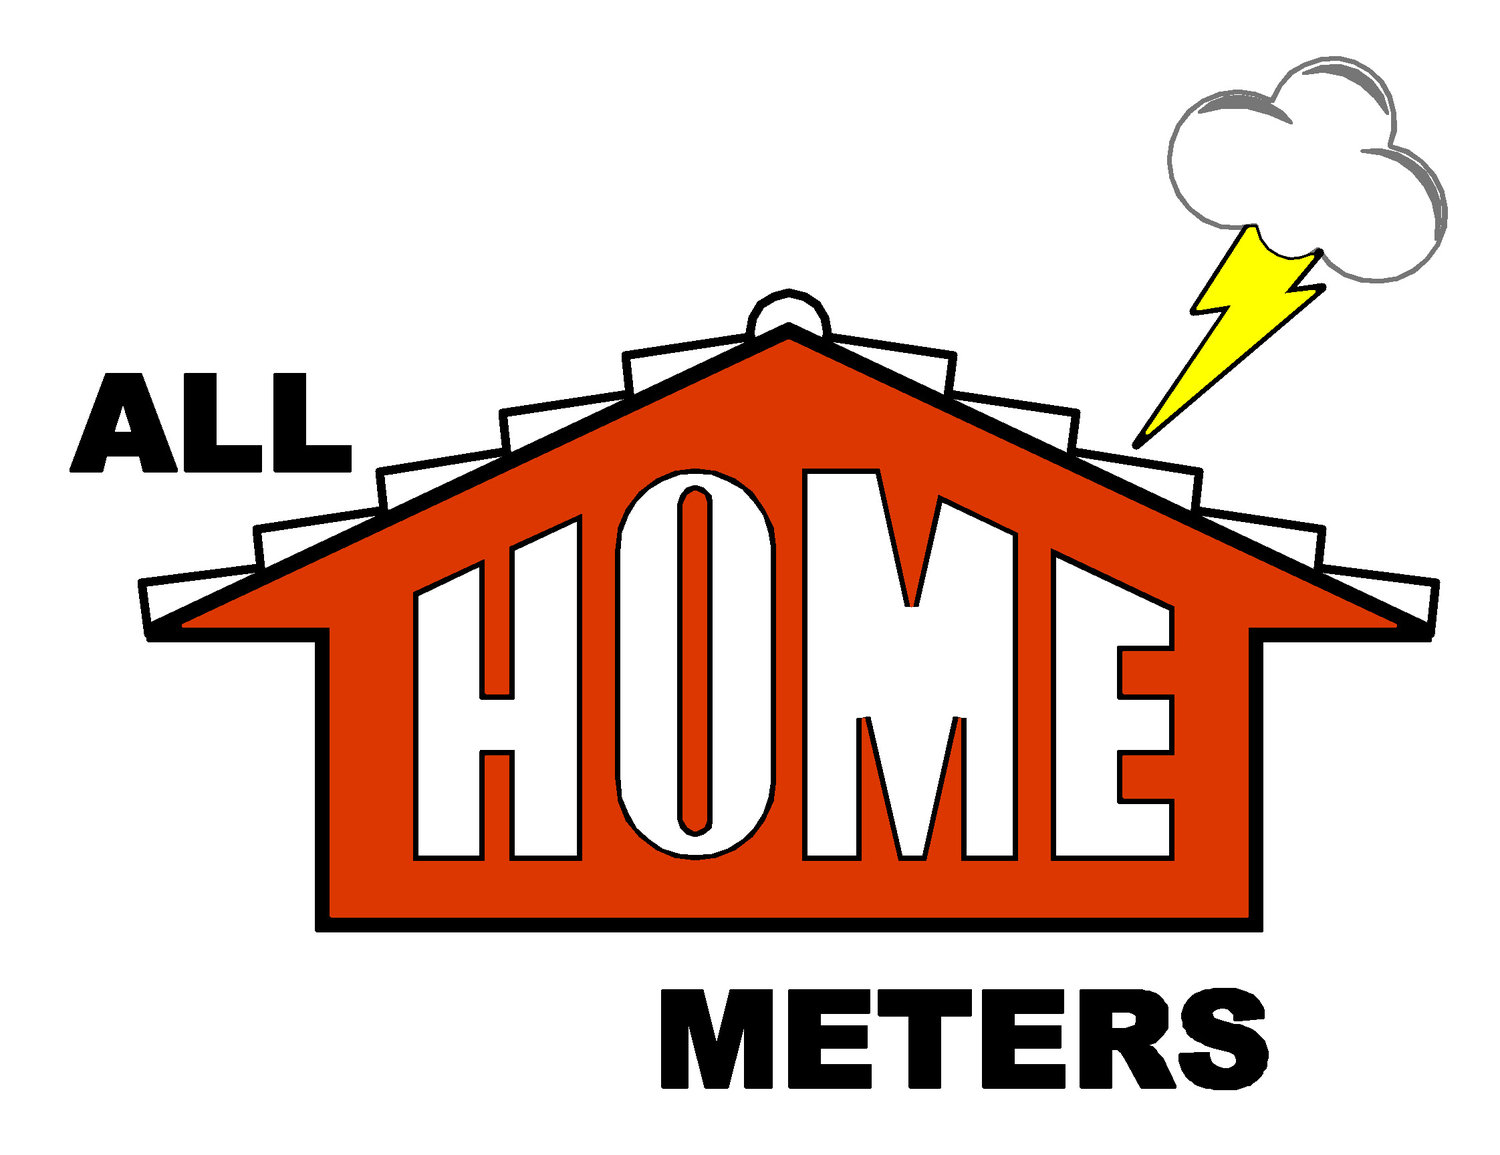 All Home Meters, LLC.